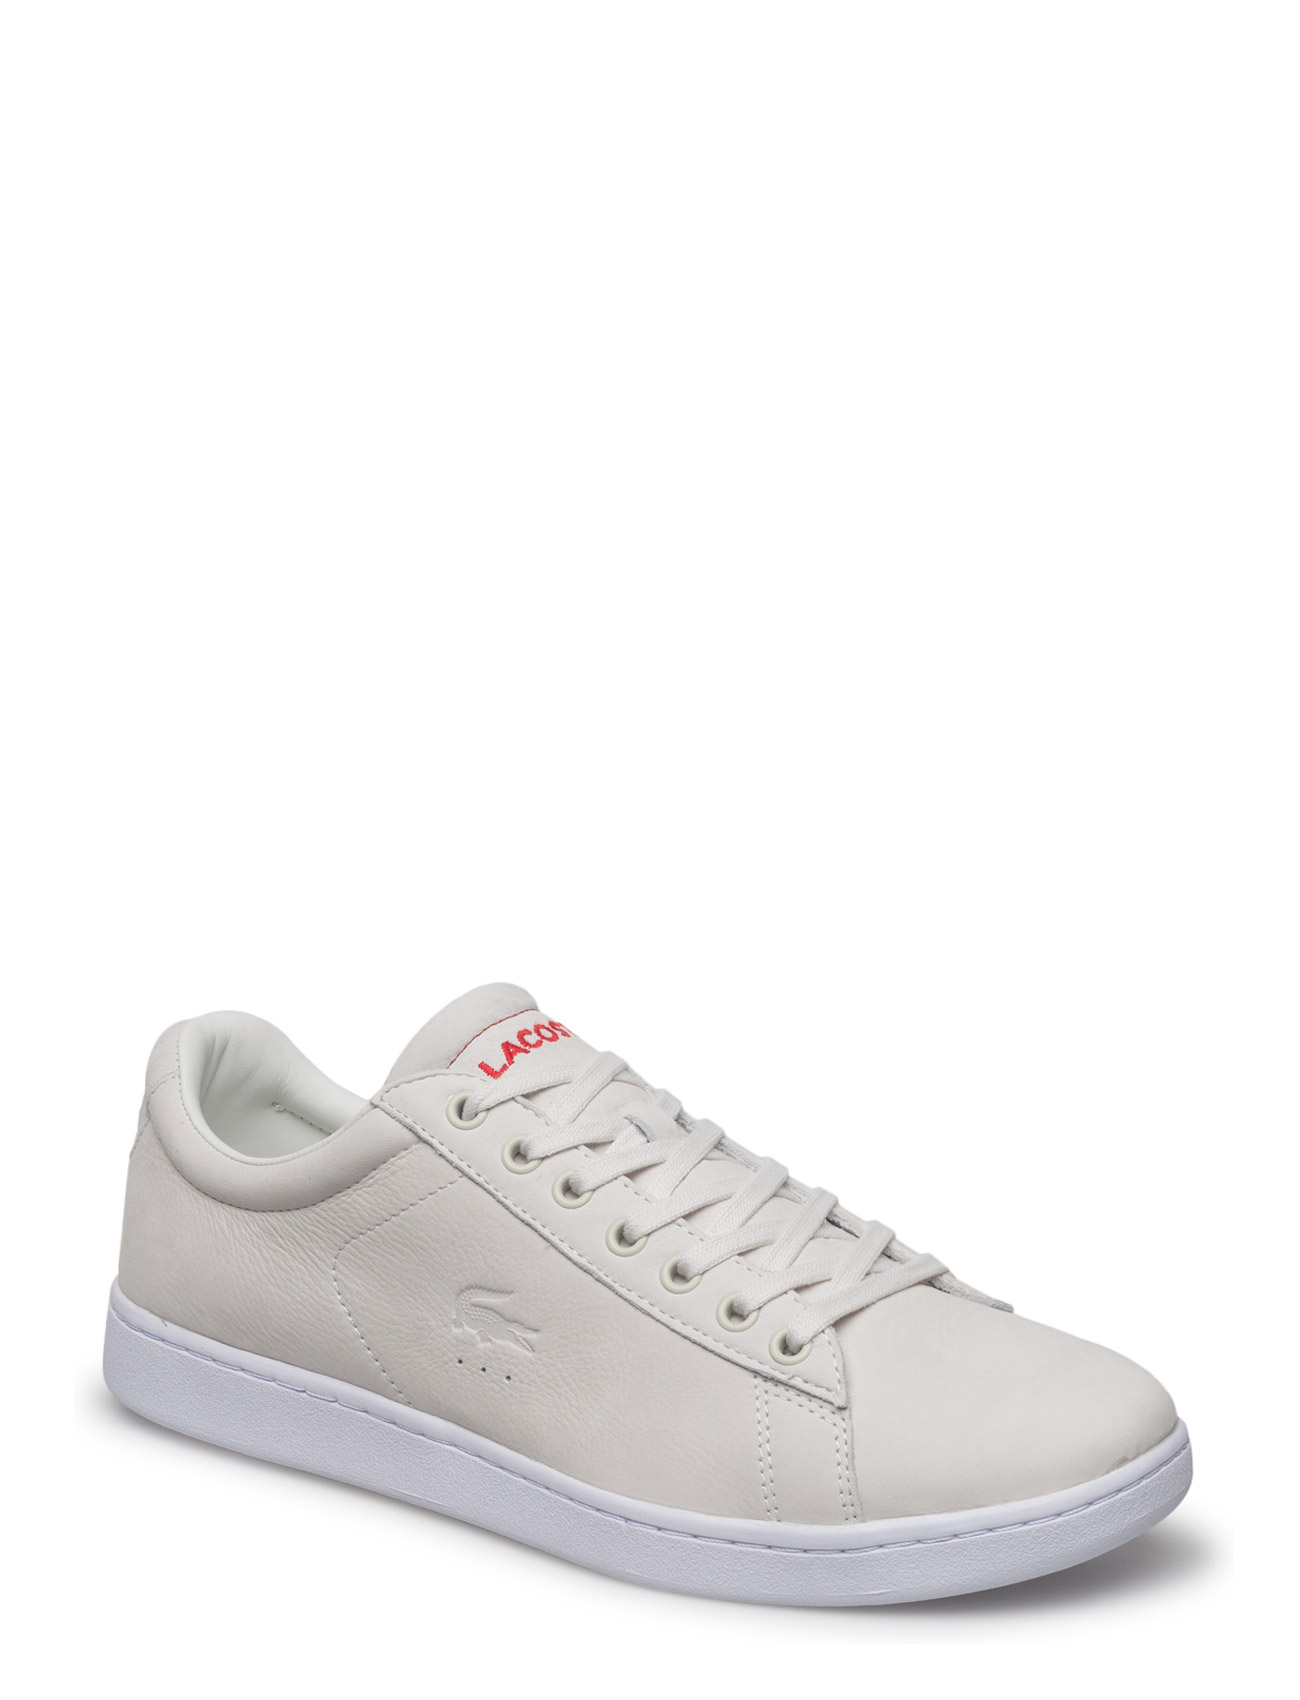 lacoste shoes Carnaby evo 317 1 fra boozt.com dk